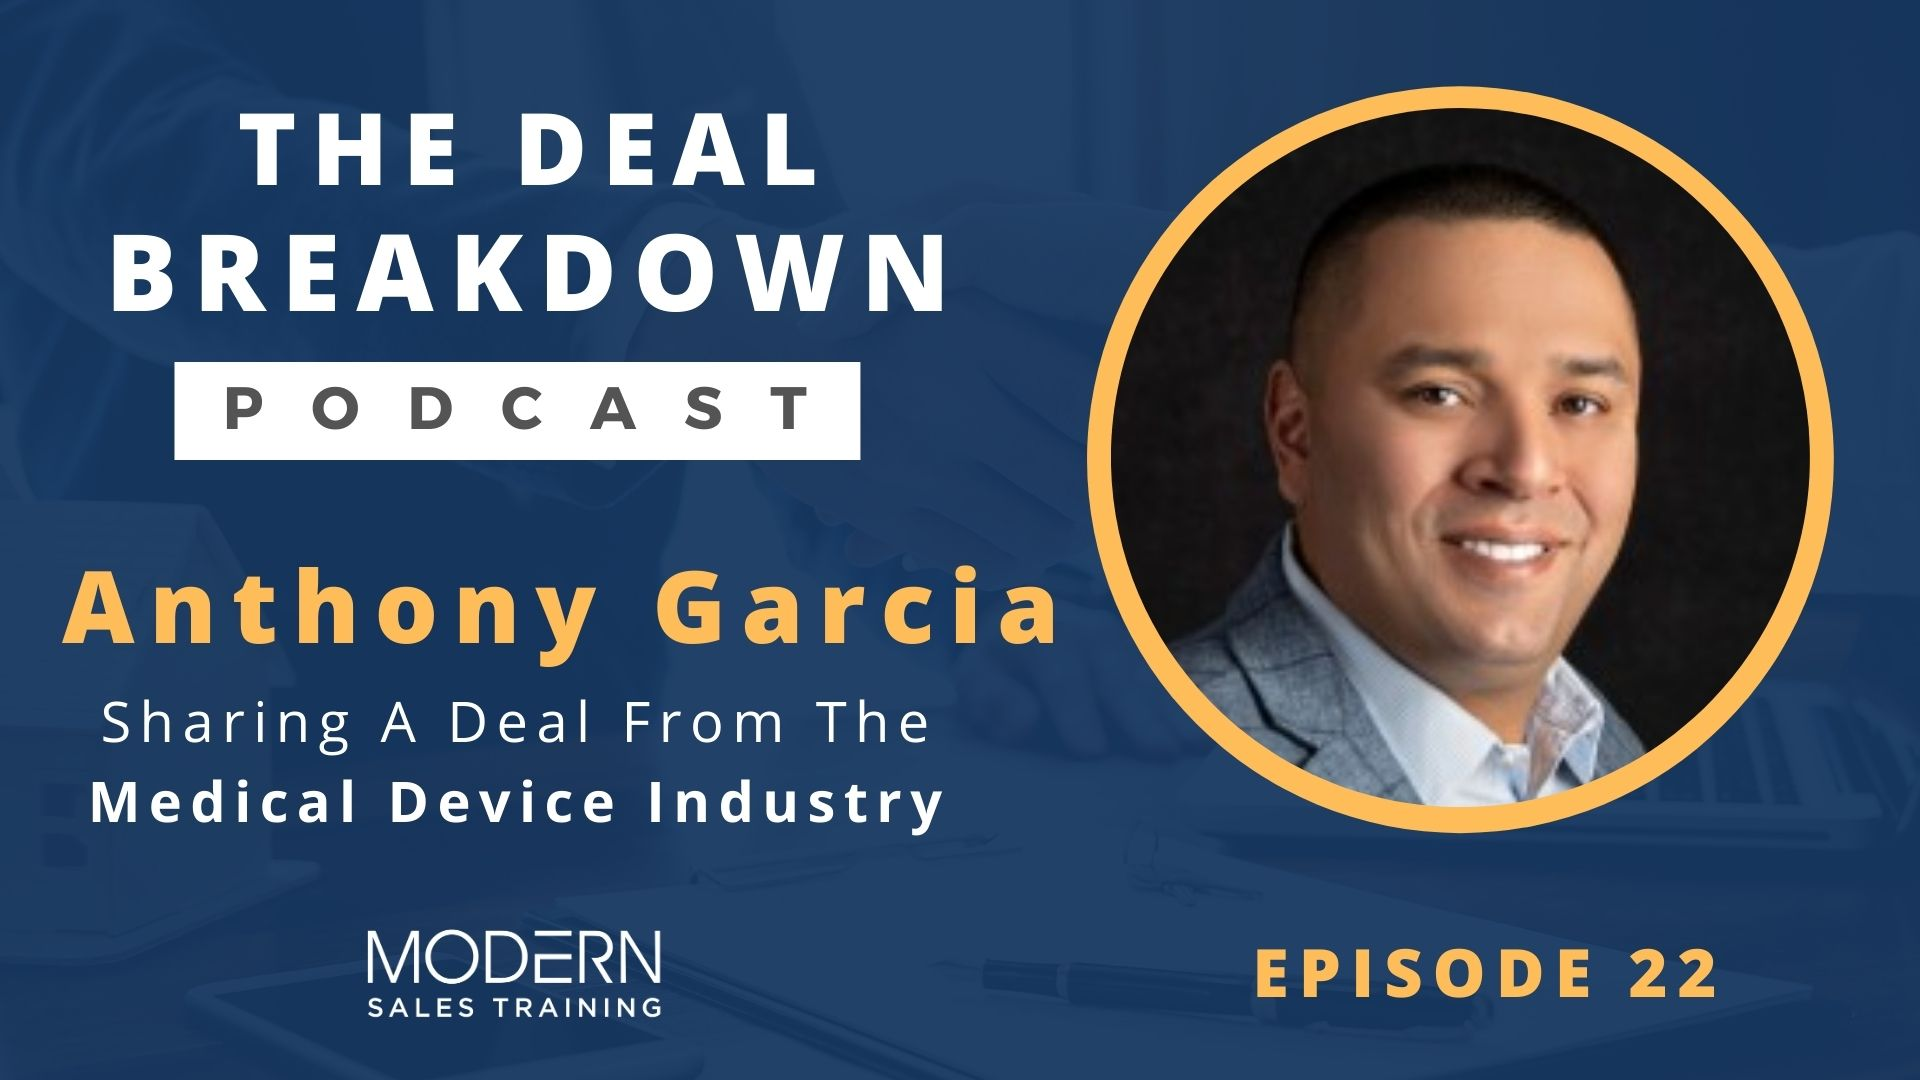 The-Deal-Breakdown-Podcast-Modern-Sales-Training-Anthony-Garcia